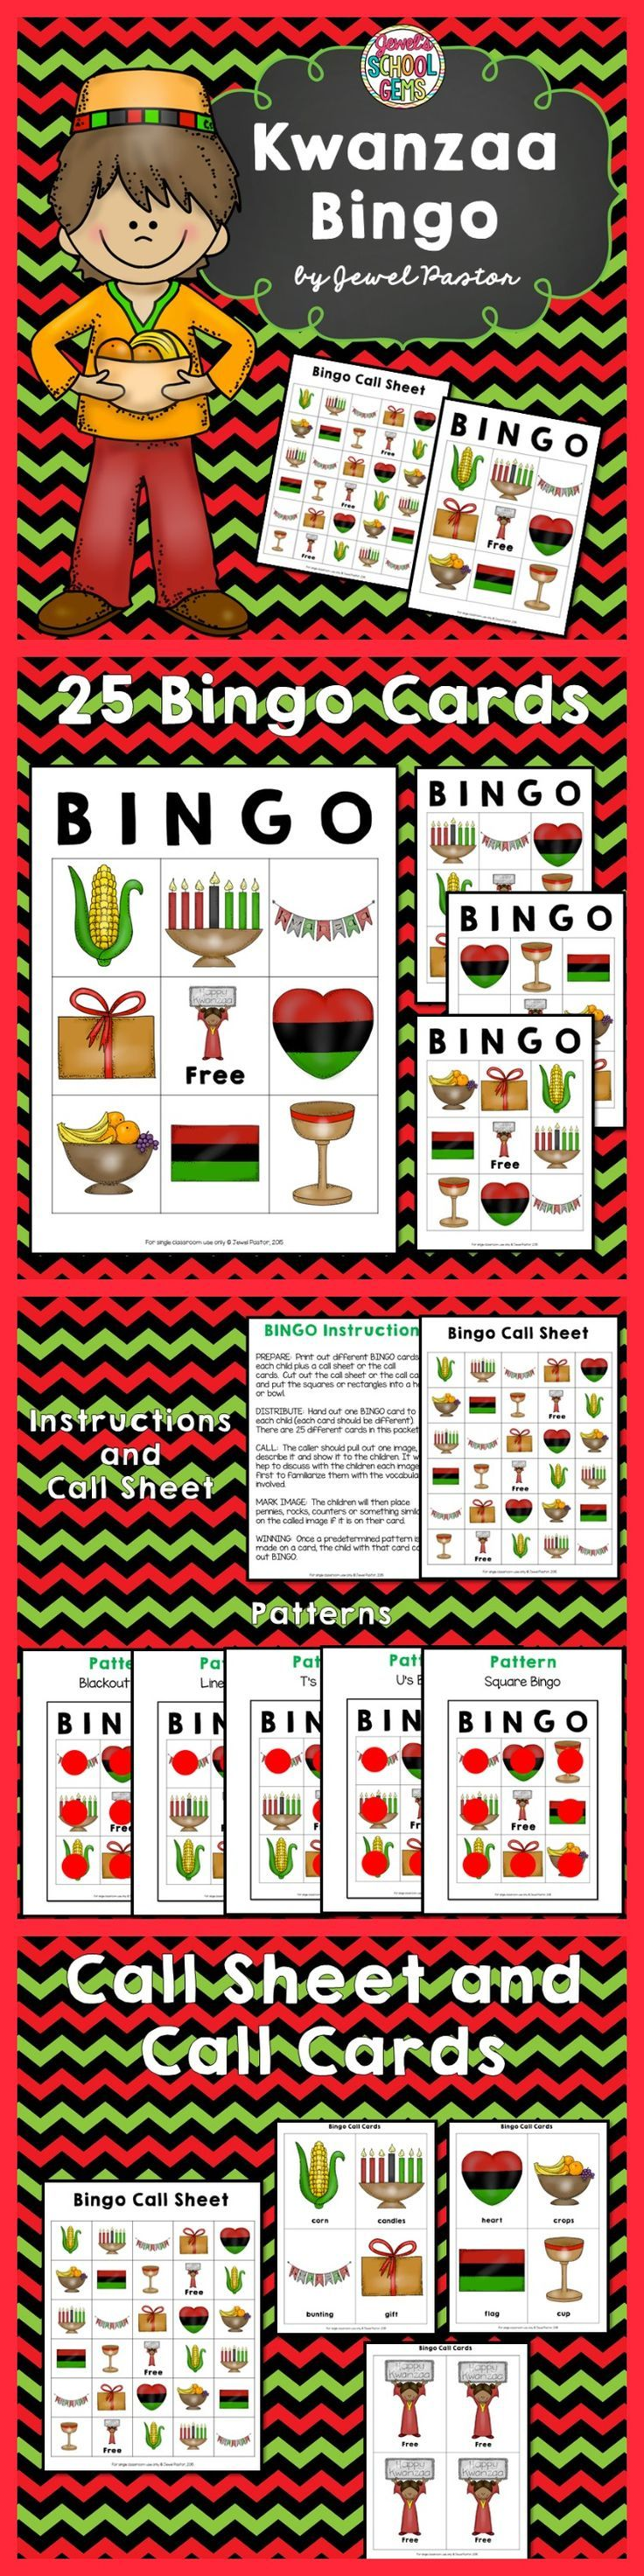 Kwanzaa Bingo Packet - In search of fun Kwanzaa activities? Engage your students this Kwanzaa Holiday with this fun Kwanzaa Bingo! This packet contains instructions, patterns, bingo cards, a call sheet and call cards. See the Preview to have an idea of what is inside this Kwanzaa packet.